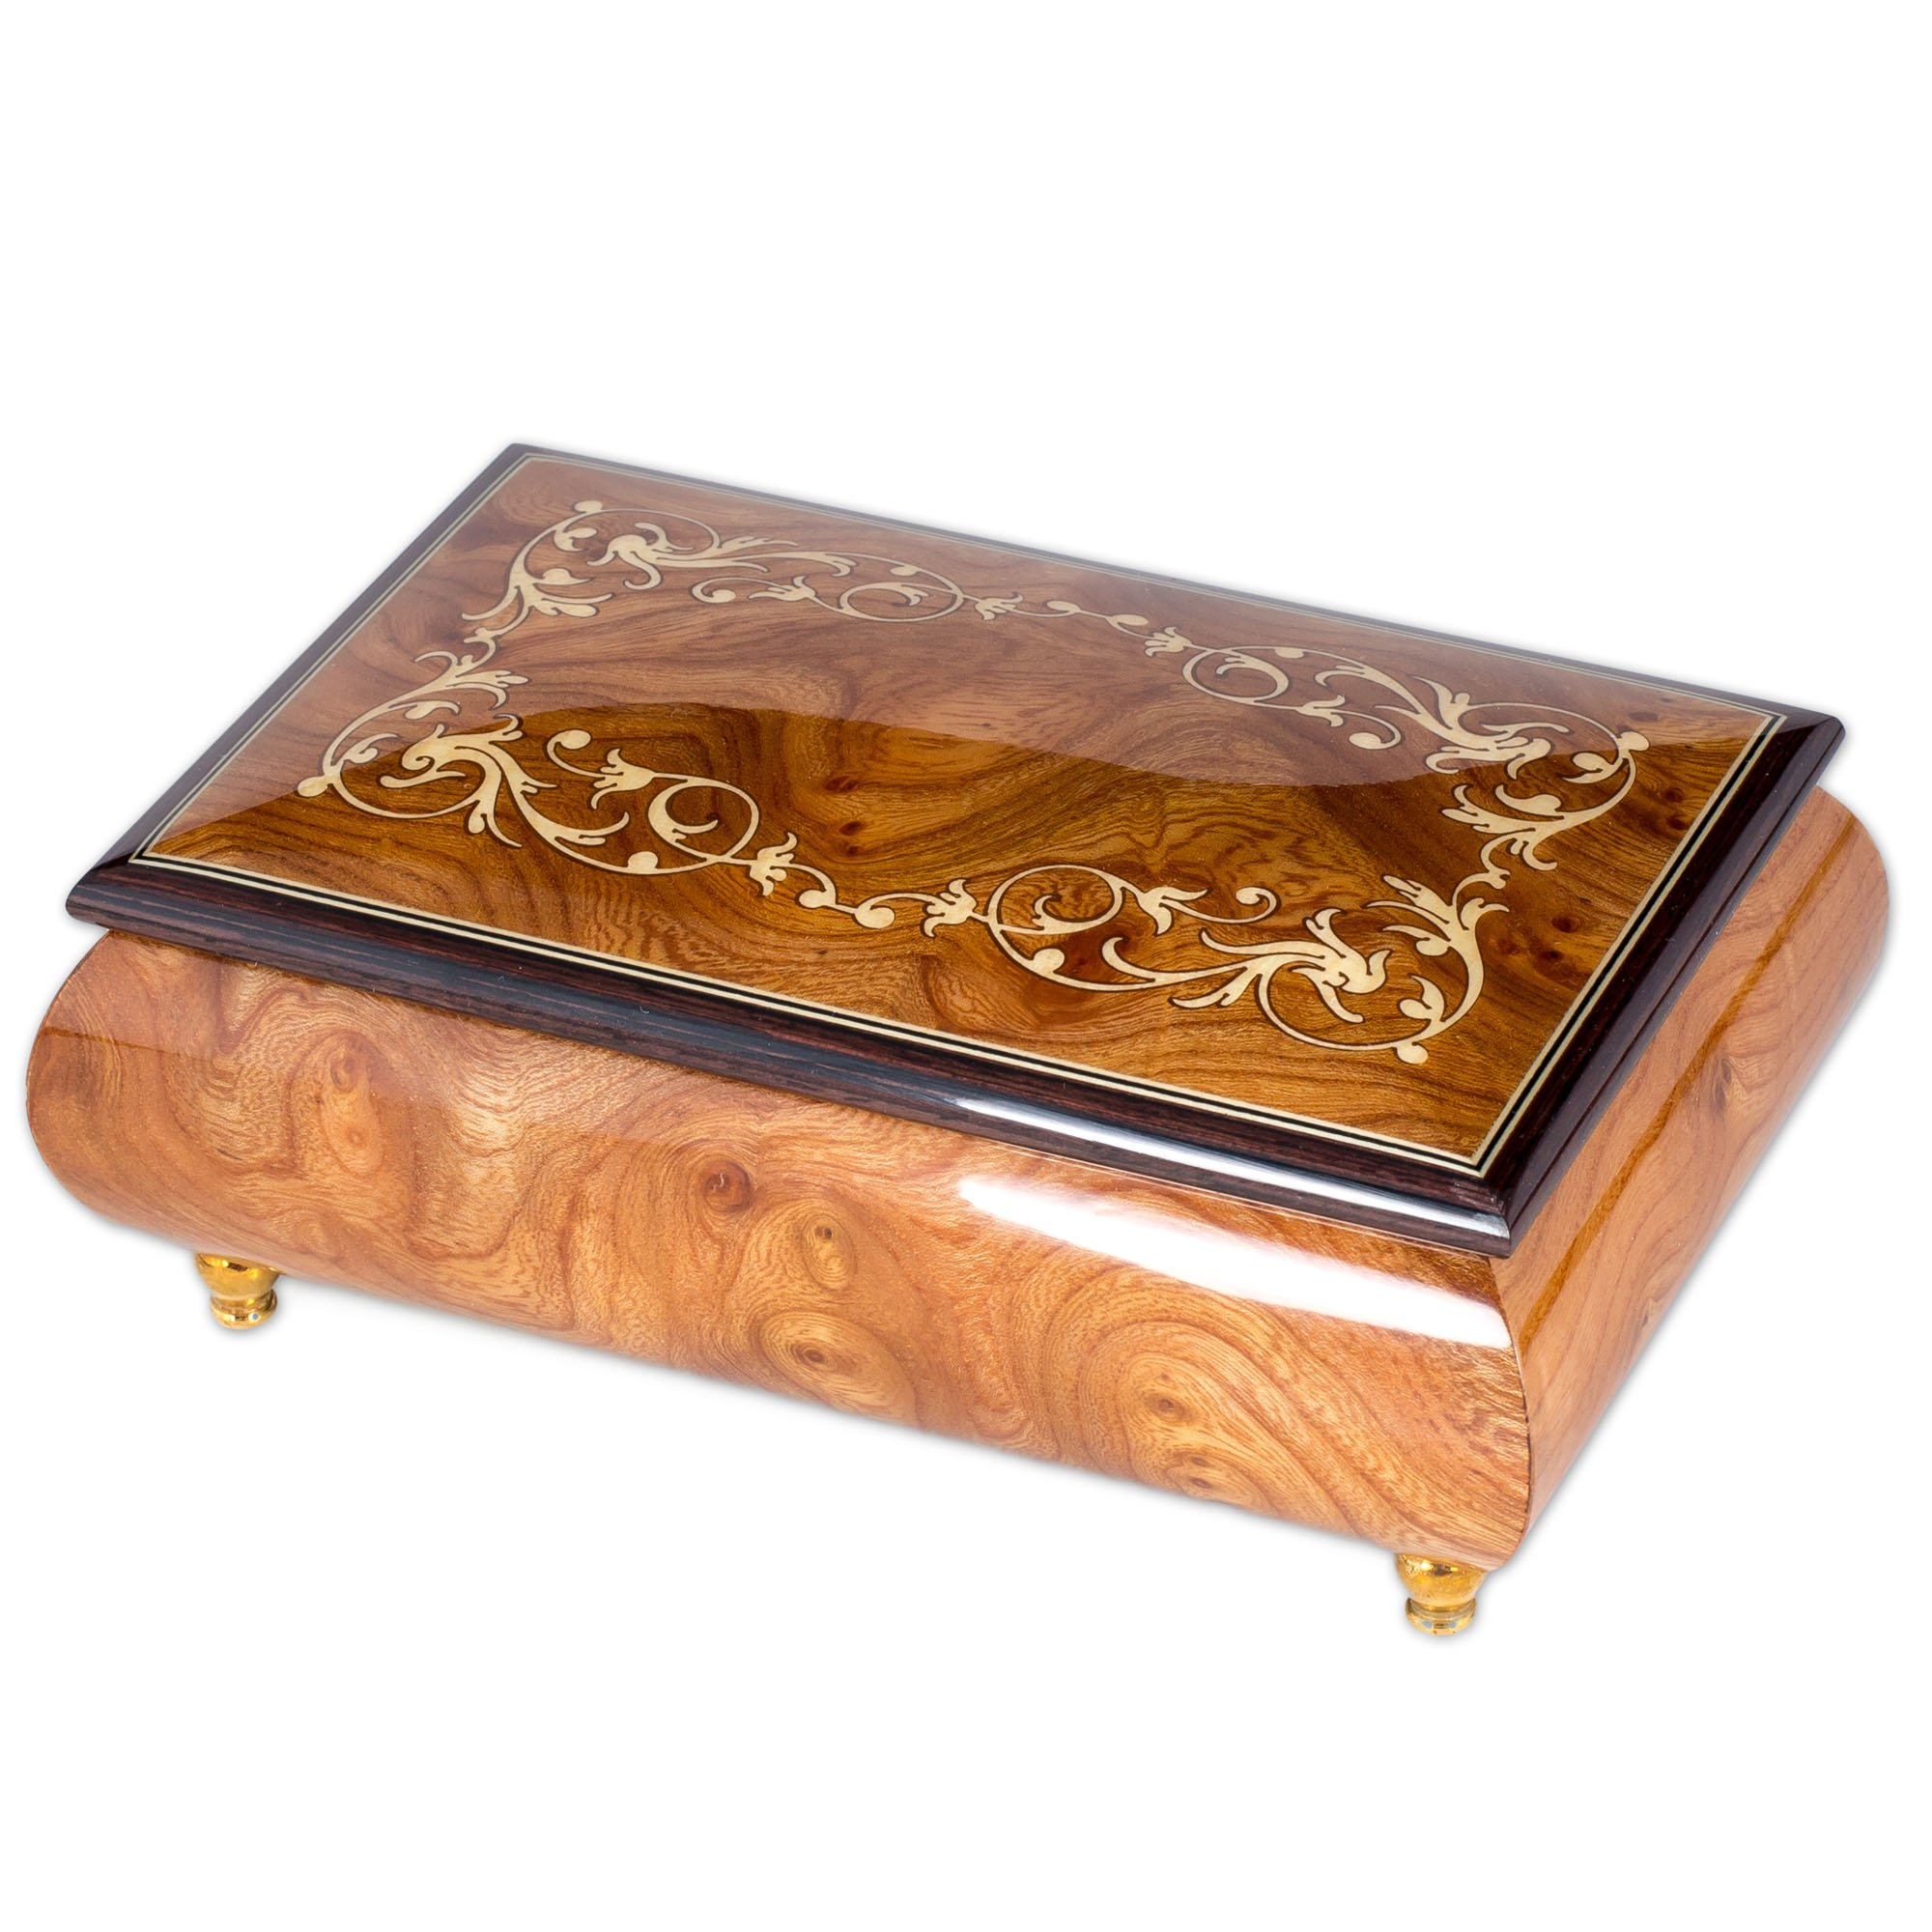 Italian Hand Crafted Inlaid Natural Wood Musical Jewelry Box - Plays Canon In D